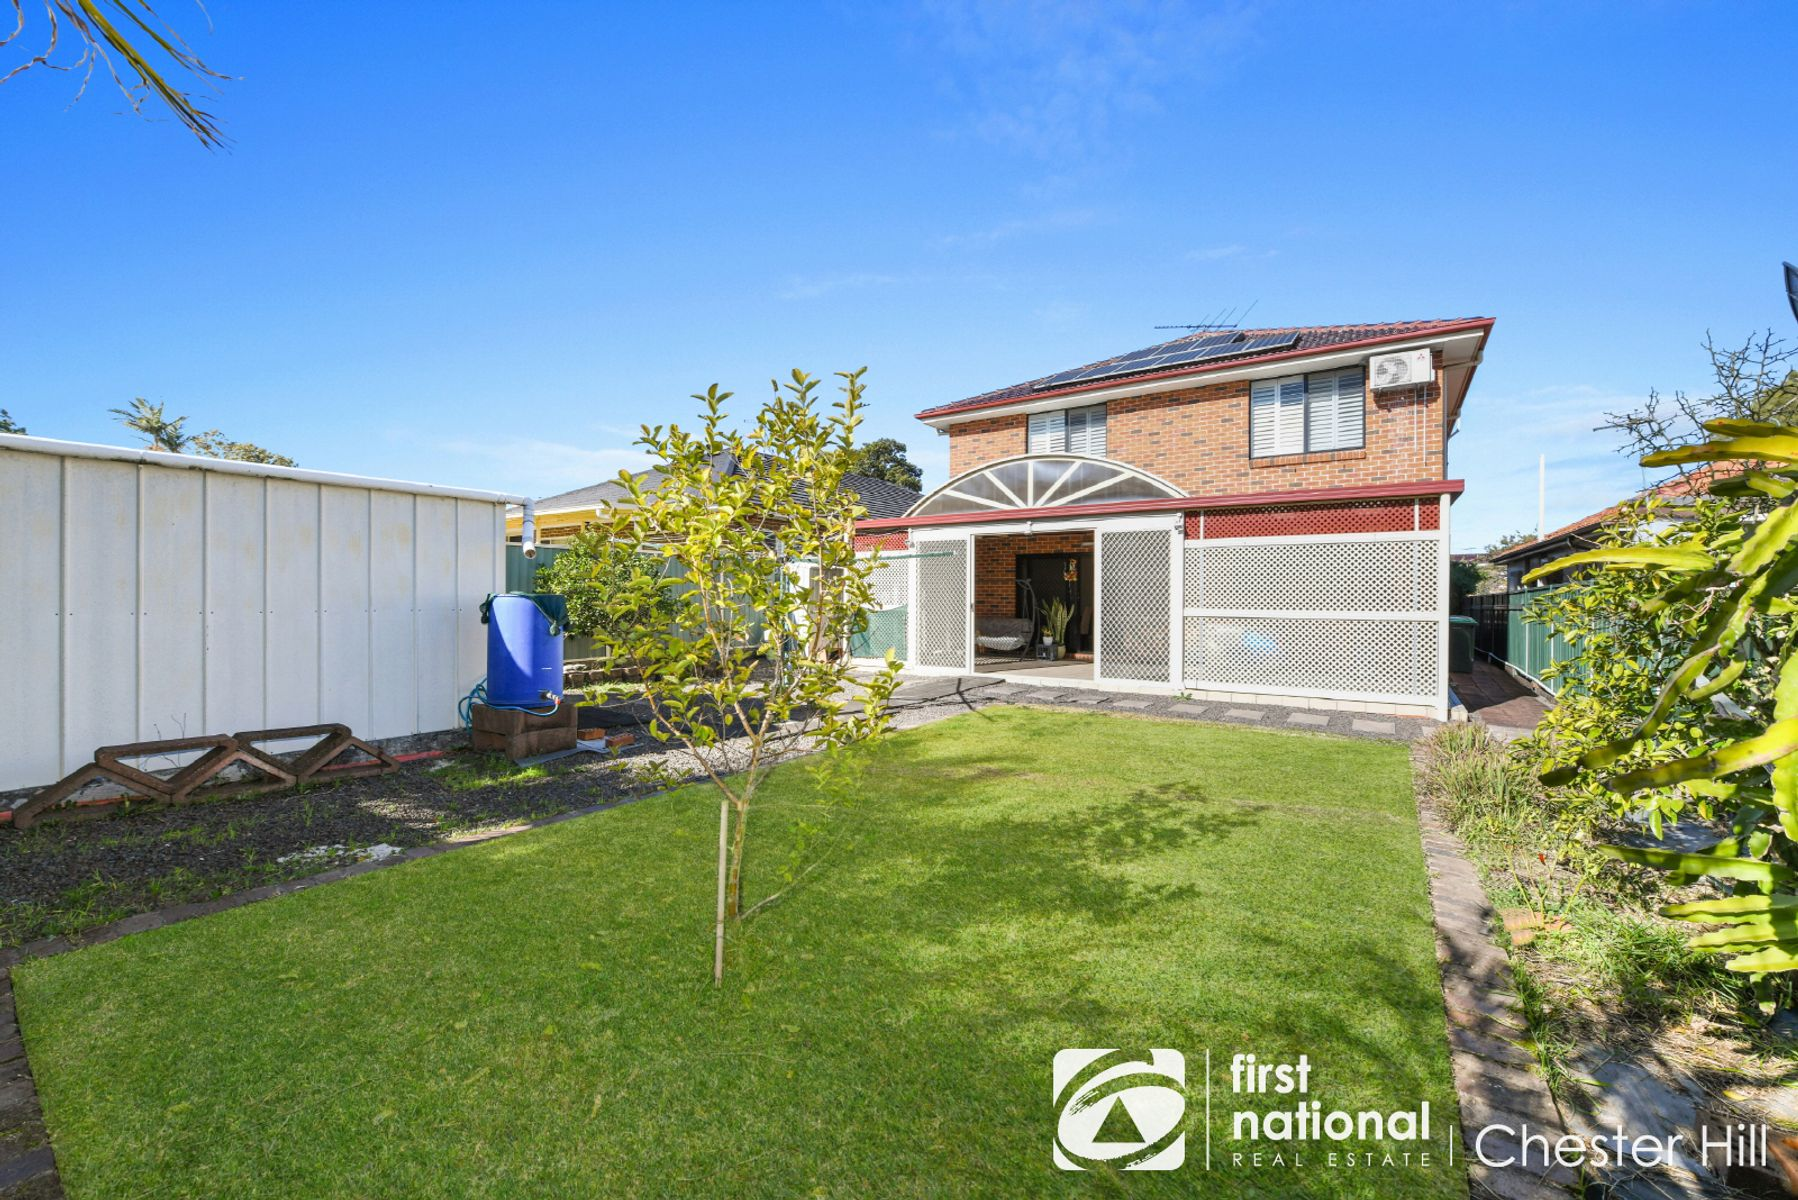 70 McClelland St, Chester Hill, NSW 2162